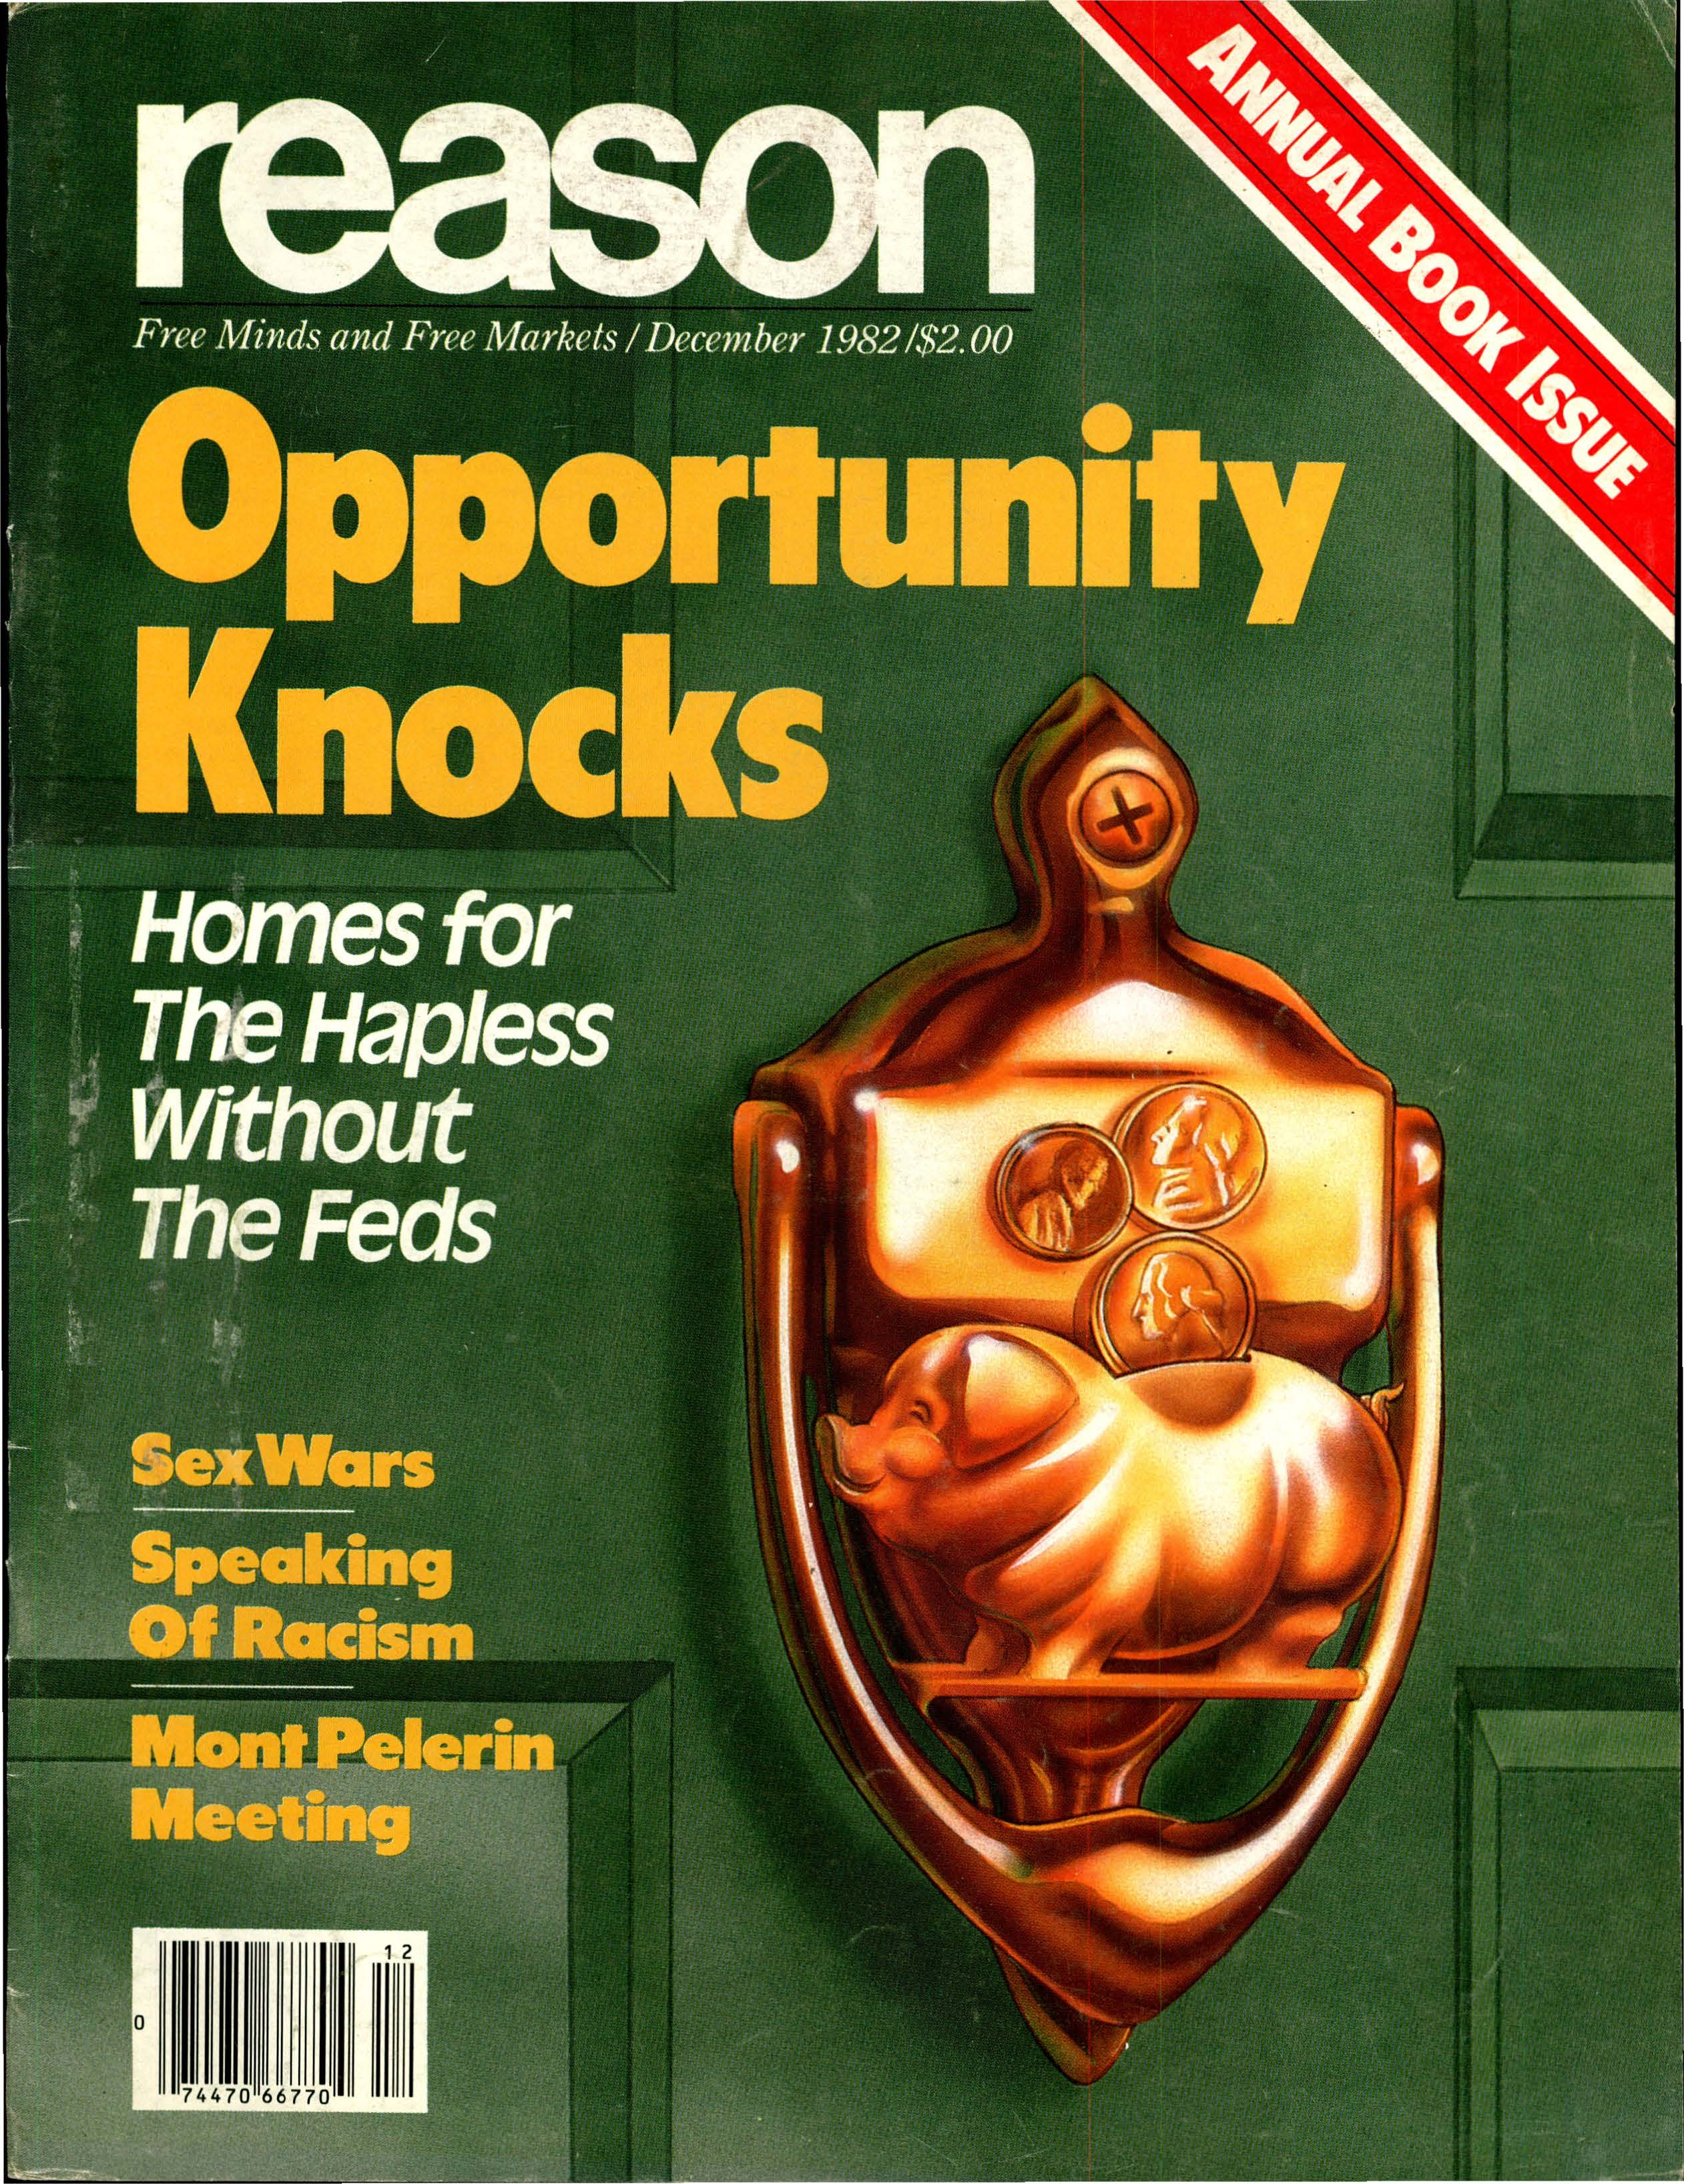 Reason Magazine, December 1982 cover image